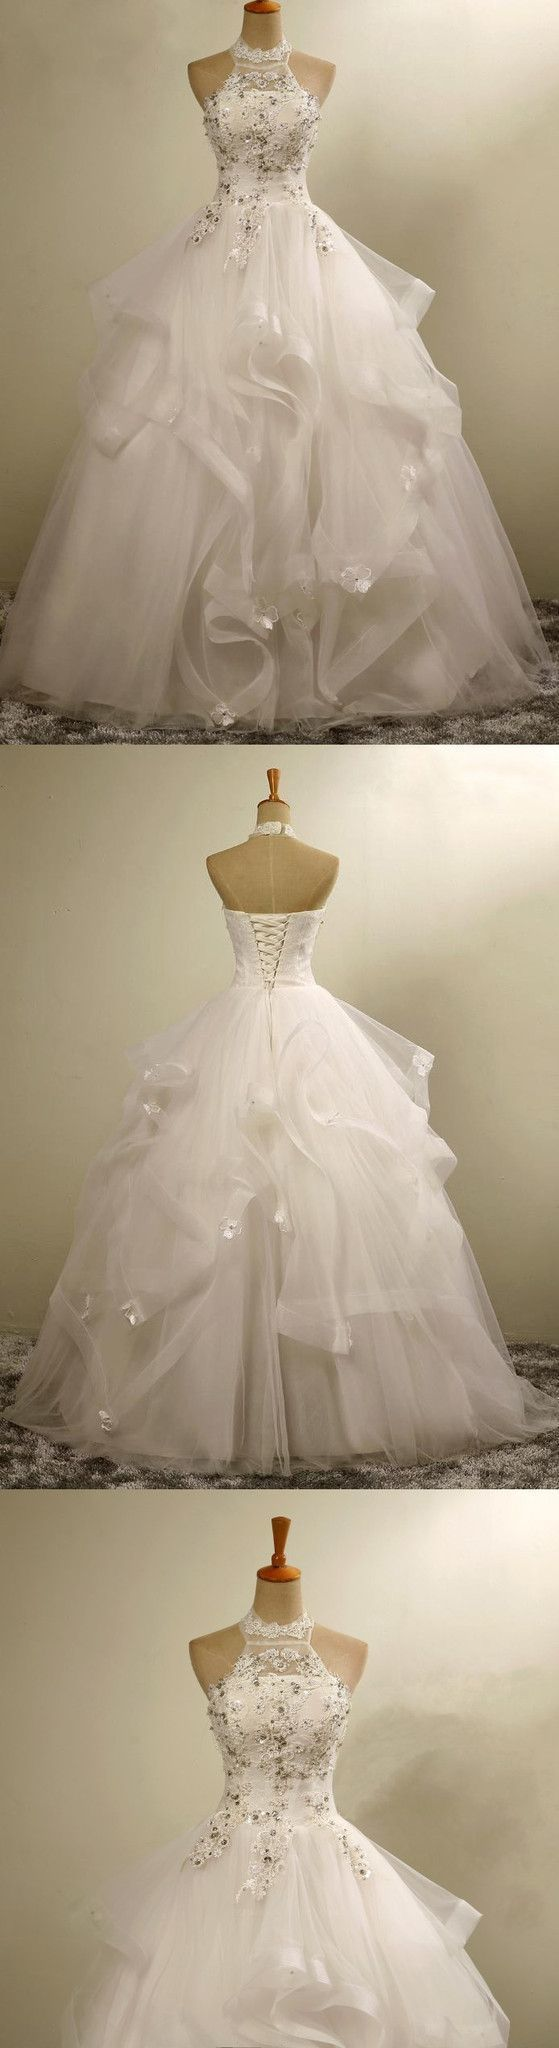 Prom Dresses Ball Gown, High Neck Elegant Gorgeous Charming Lace Appliques Organza Wedding Dresses